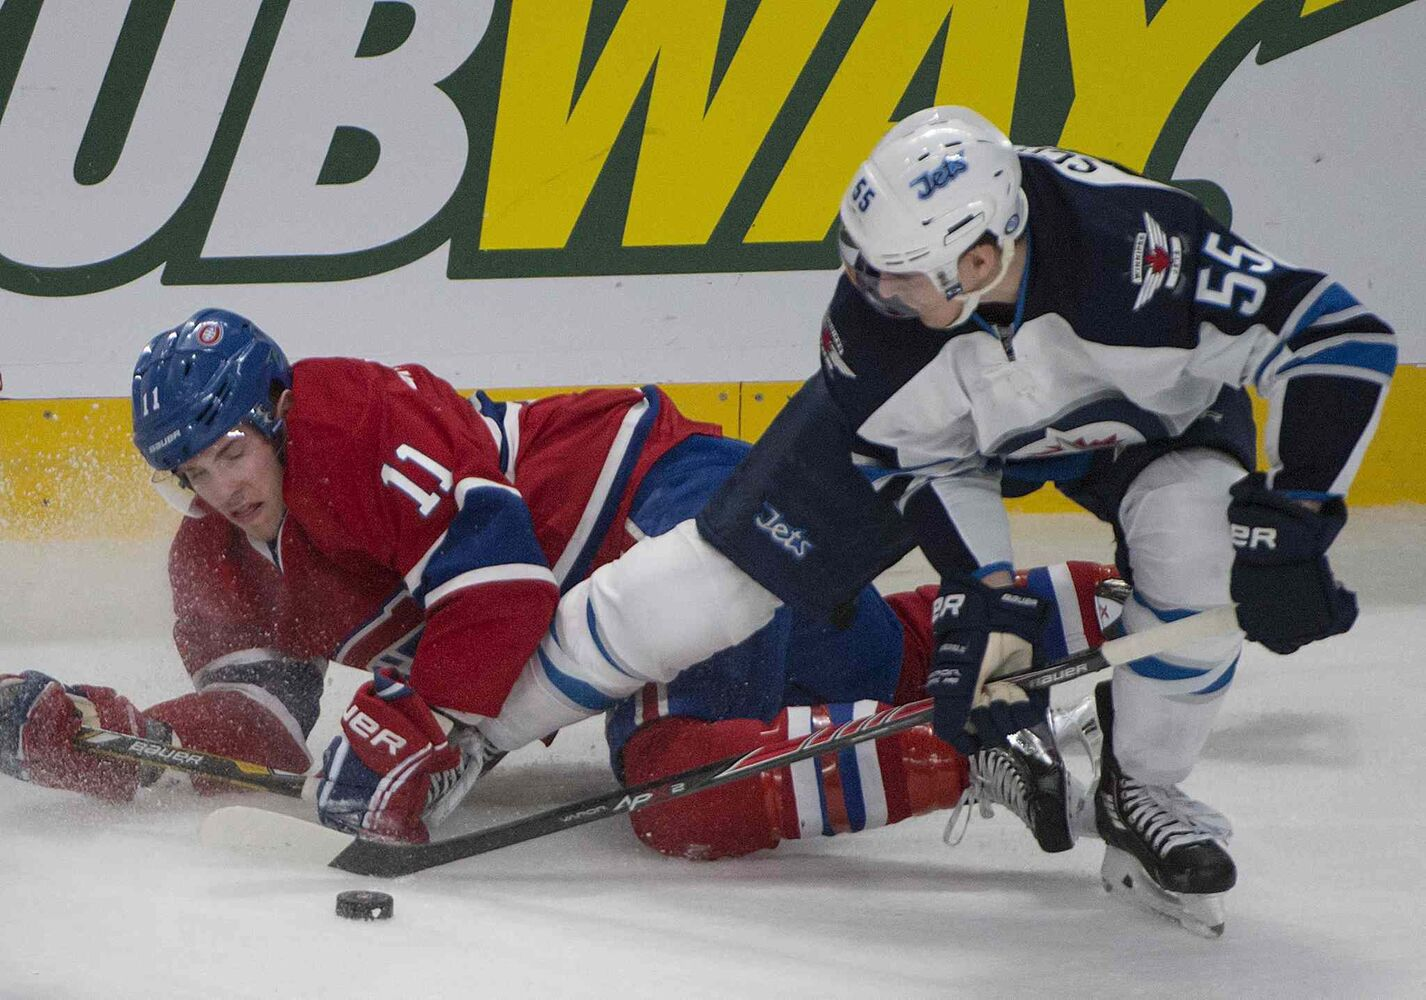 The Jets' Mark Scheifele wins a battle for the puck against Montreal's Brendan Gallagher during the glorious Jets 2-1 over the Habs Sunday.  (Peter McCabe / The Canadian Press)